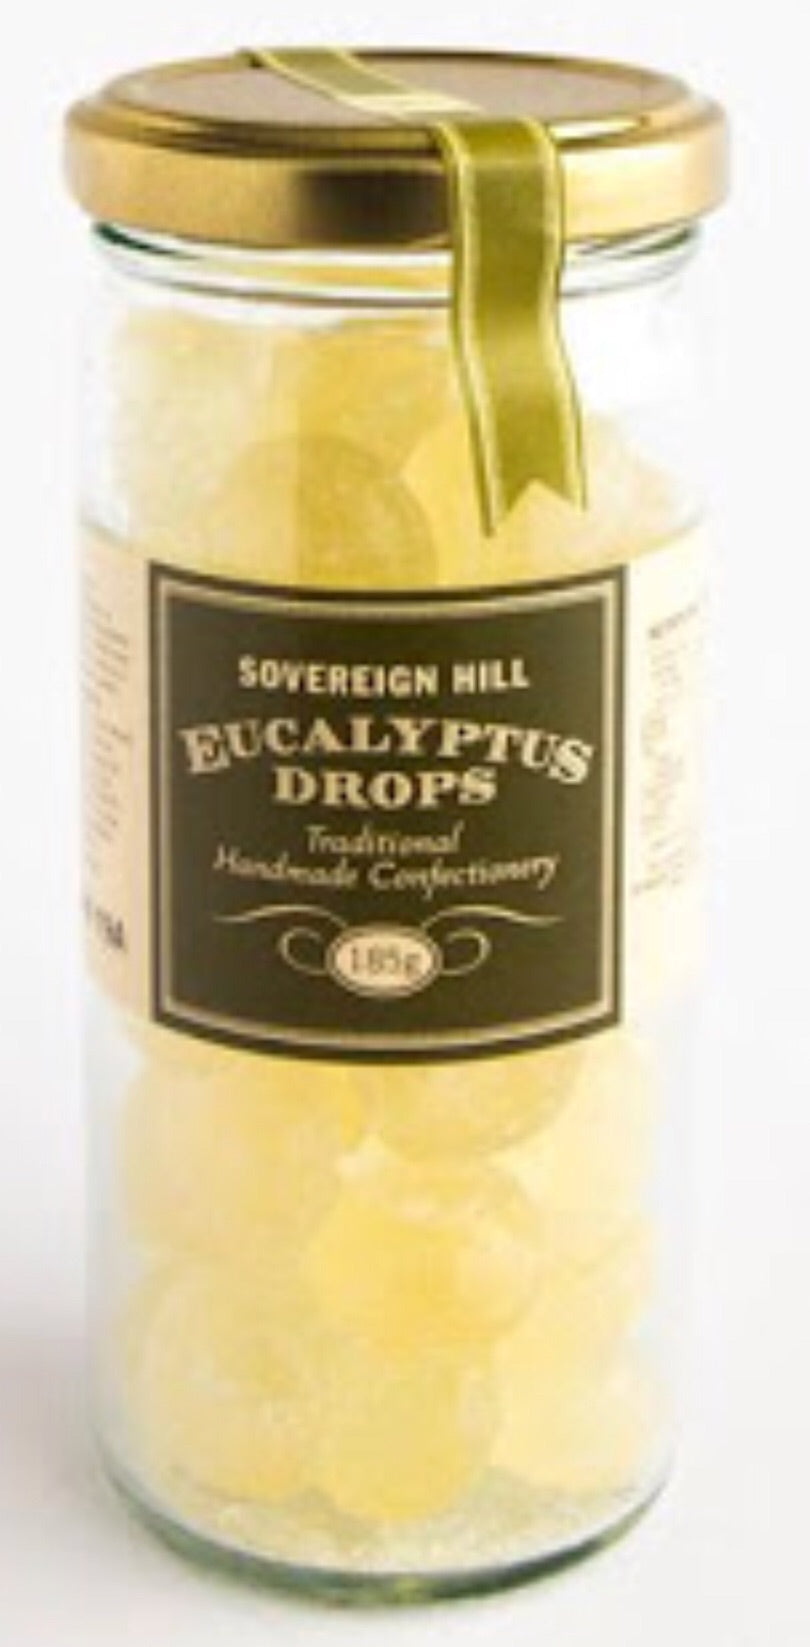 Sovereign Hill - Eucalyptus Drops